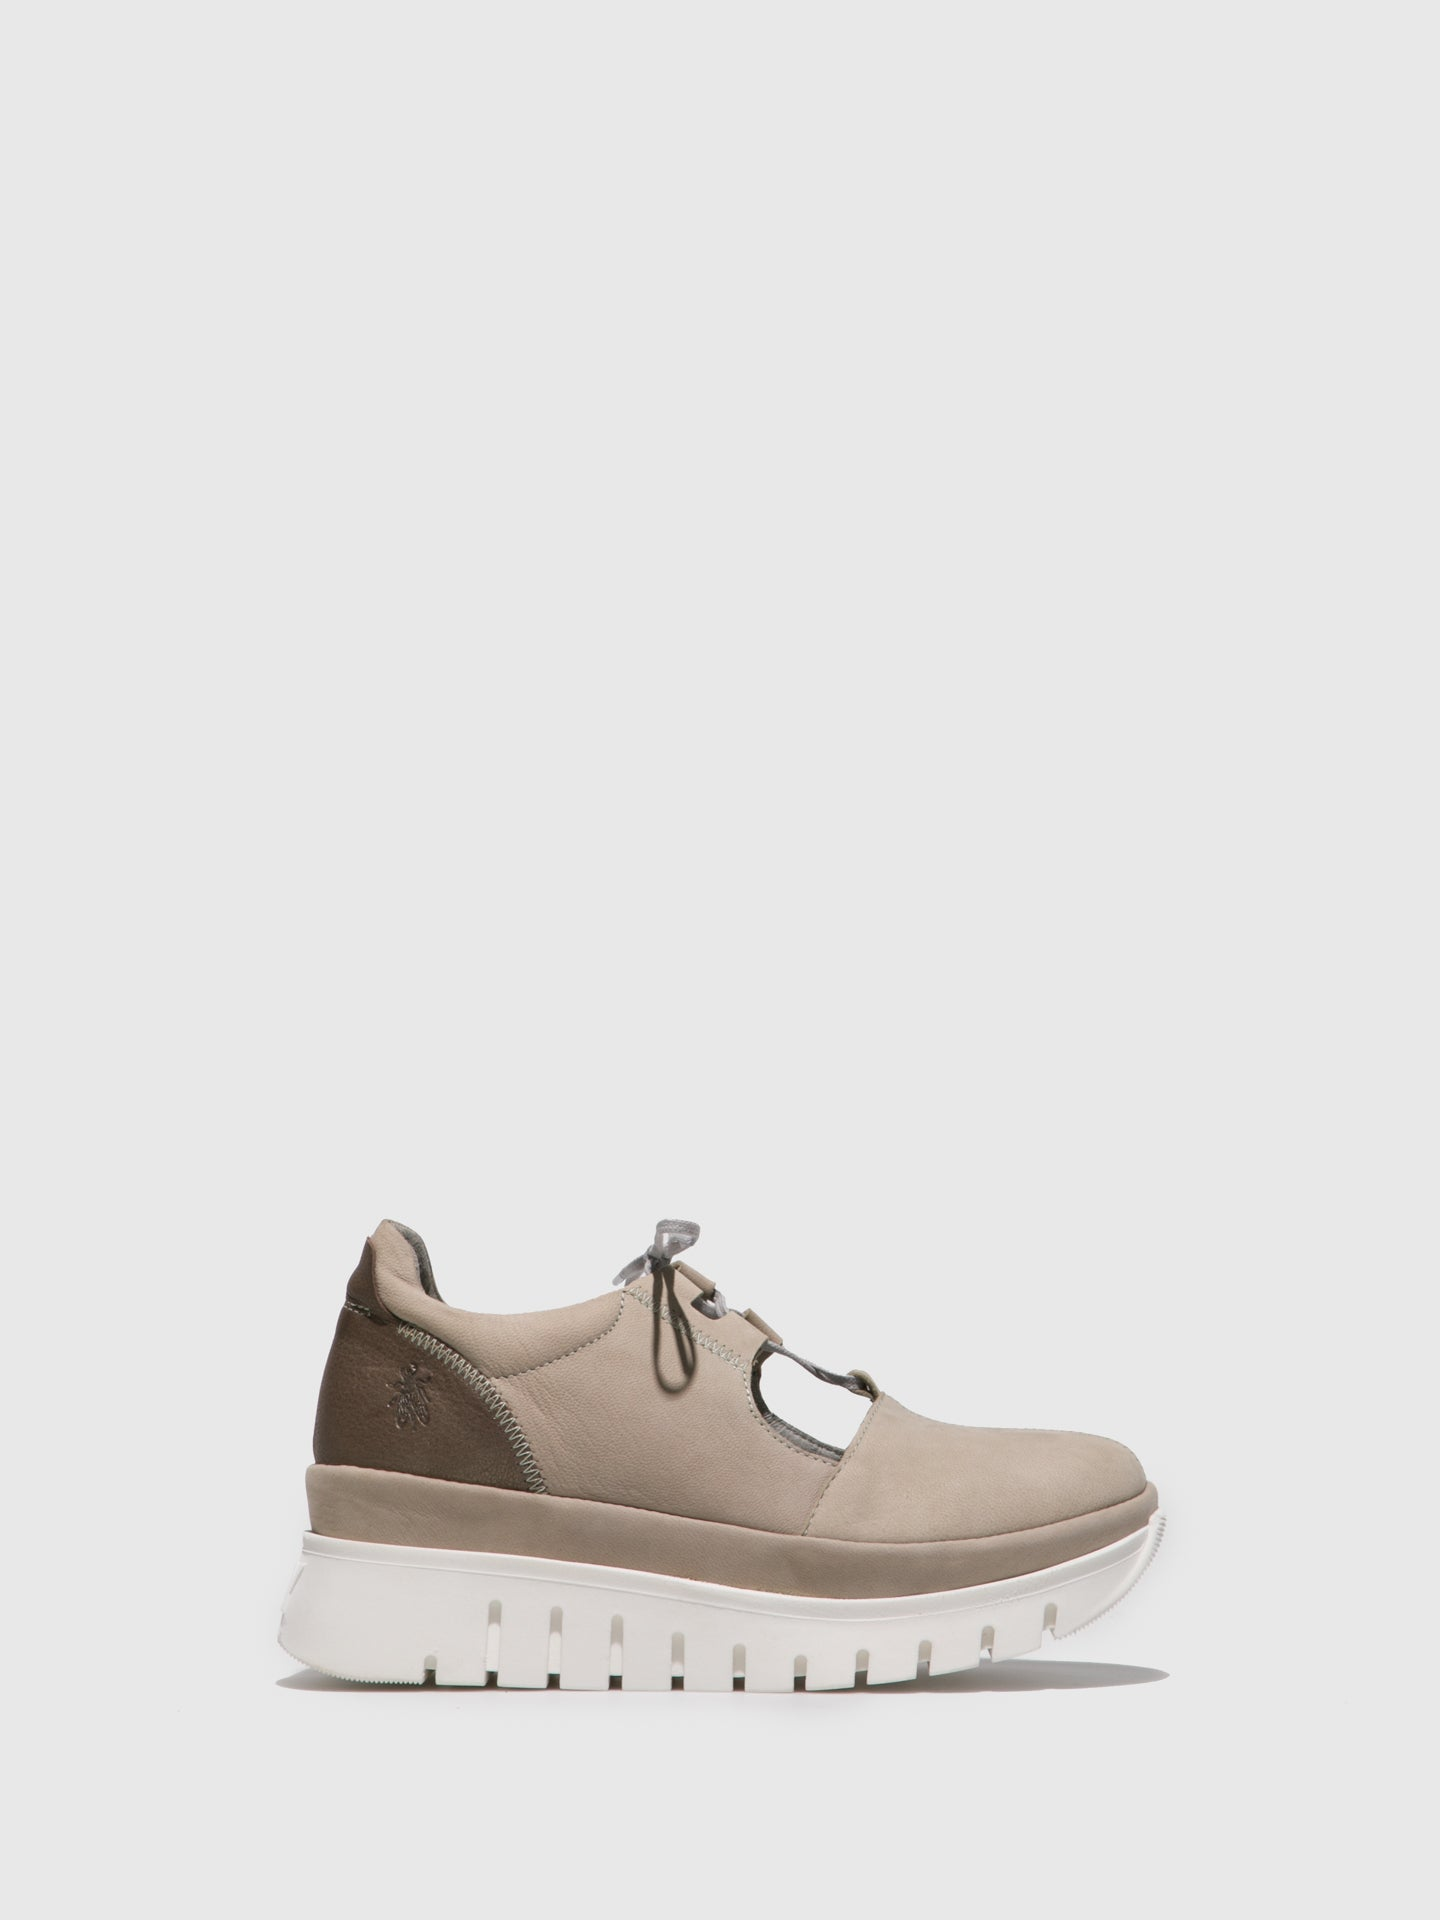 Fly London Beige Lace-up Shoes